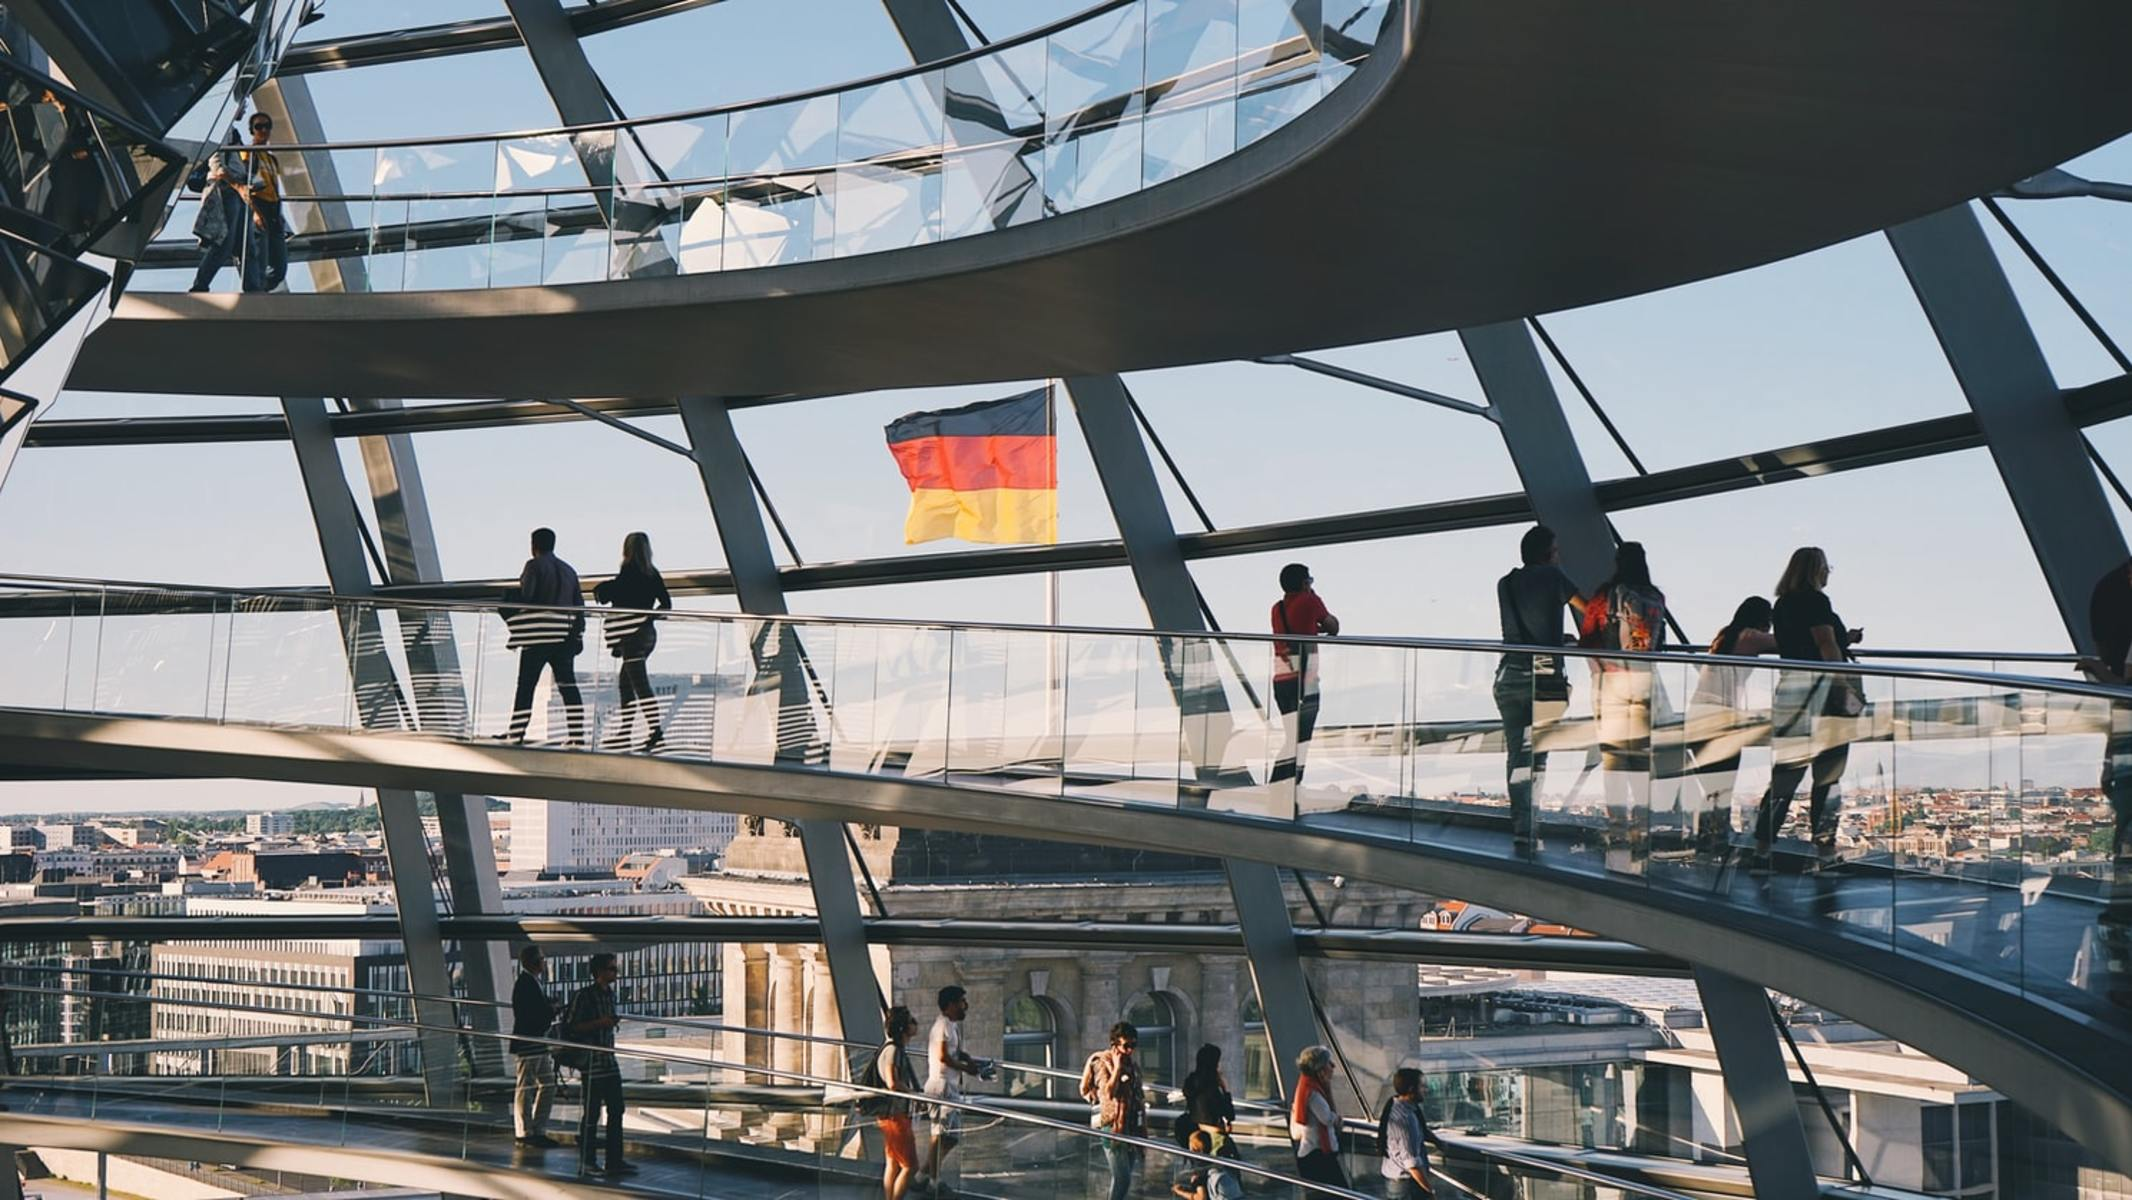 Reichstag building in Germany, Berlin